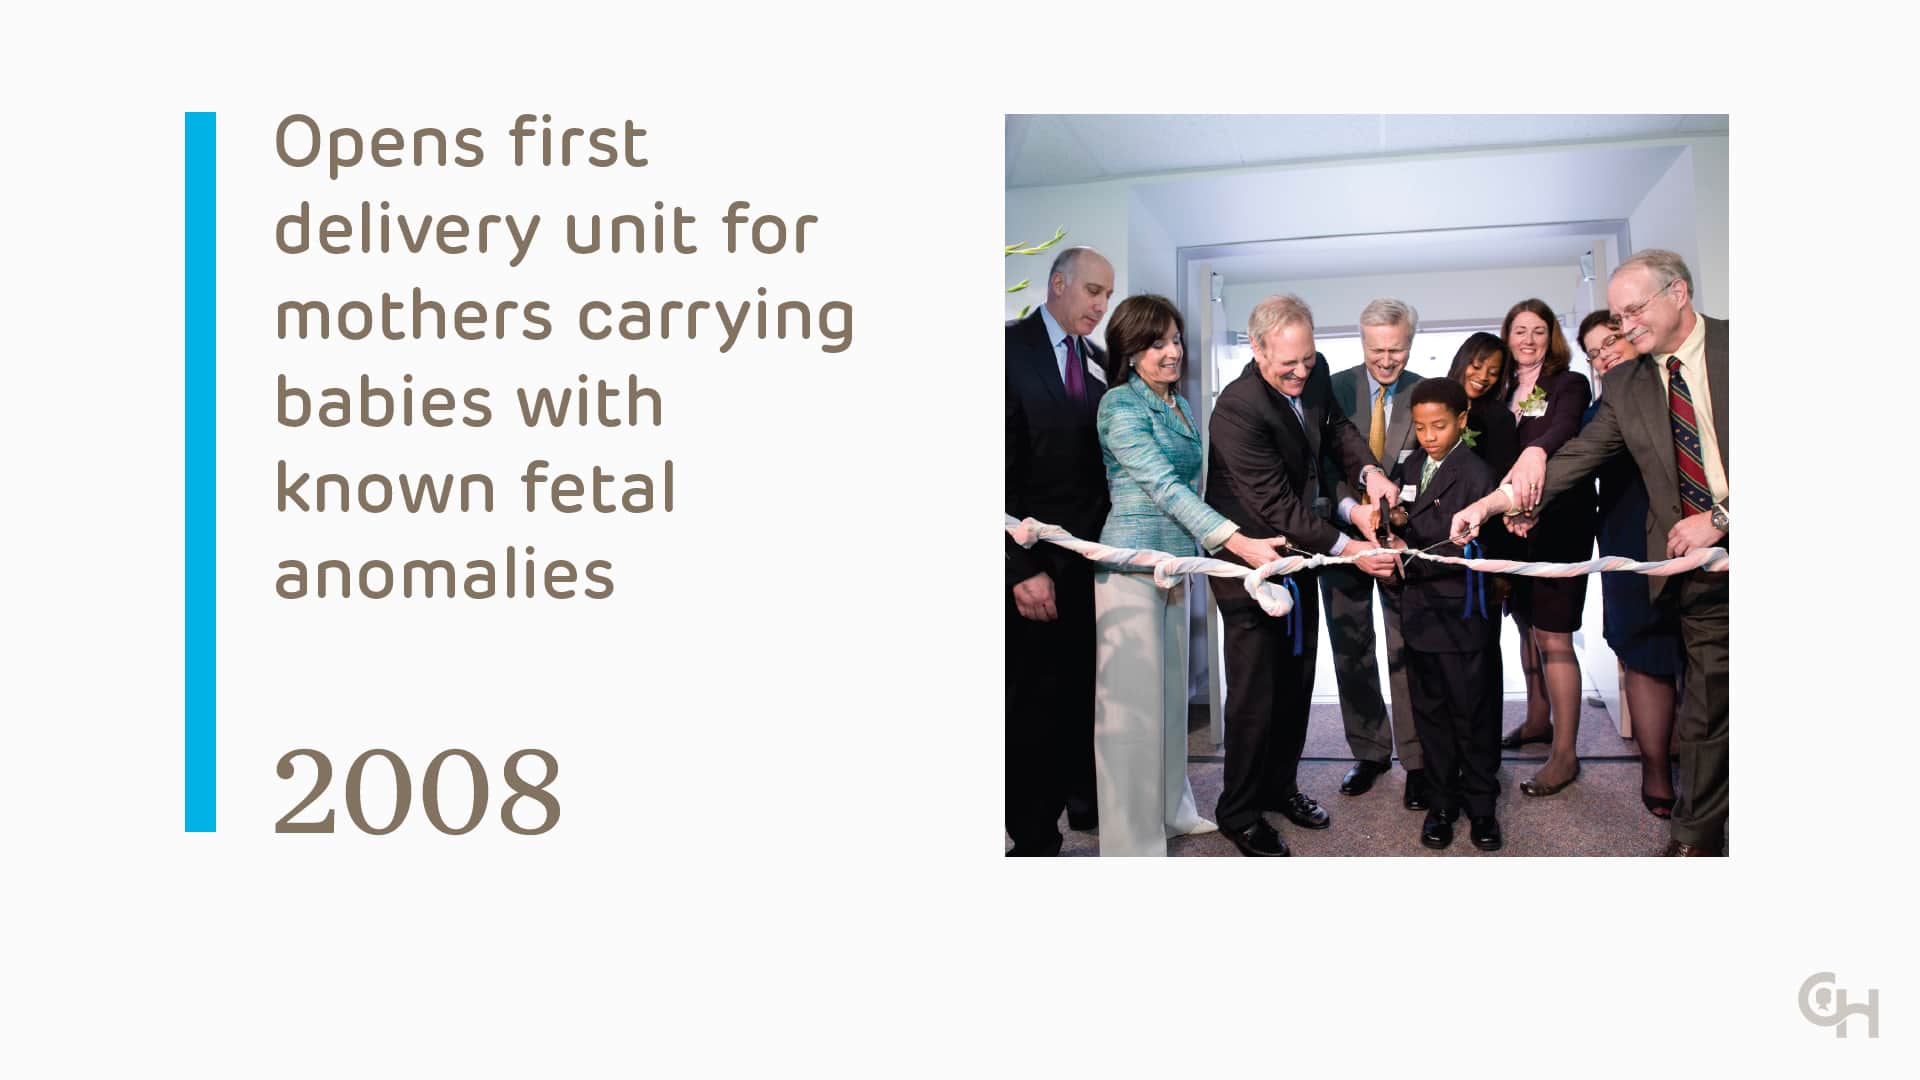 Opens first delivery unit for mothers carrying babies with known fetal anomalies - 2008